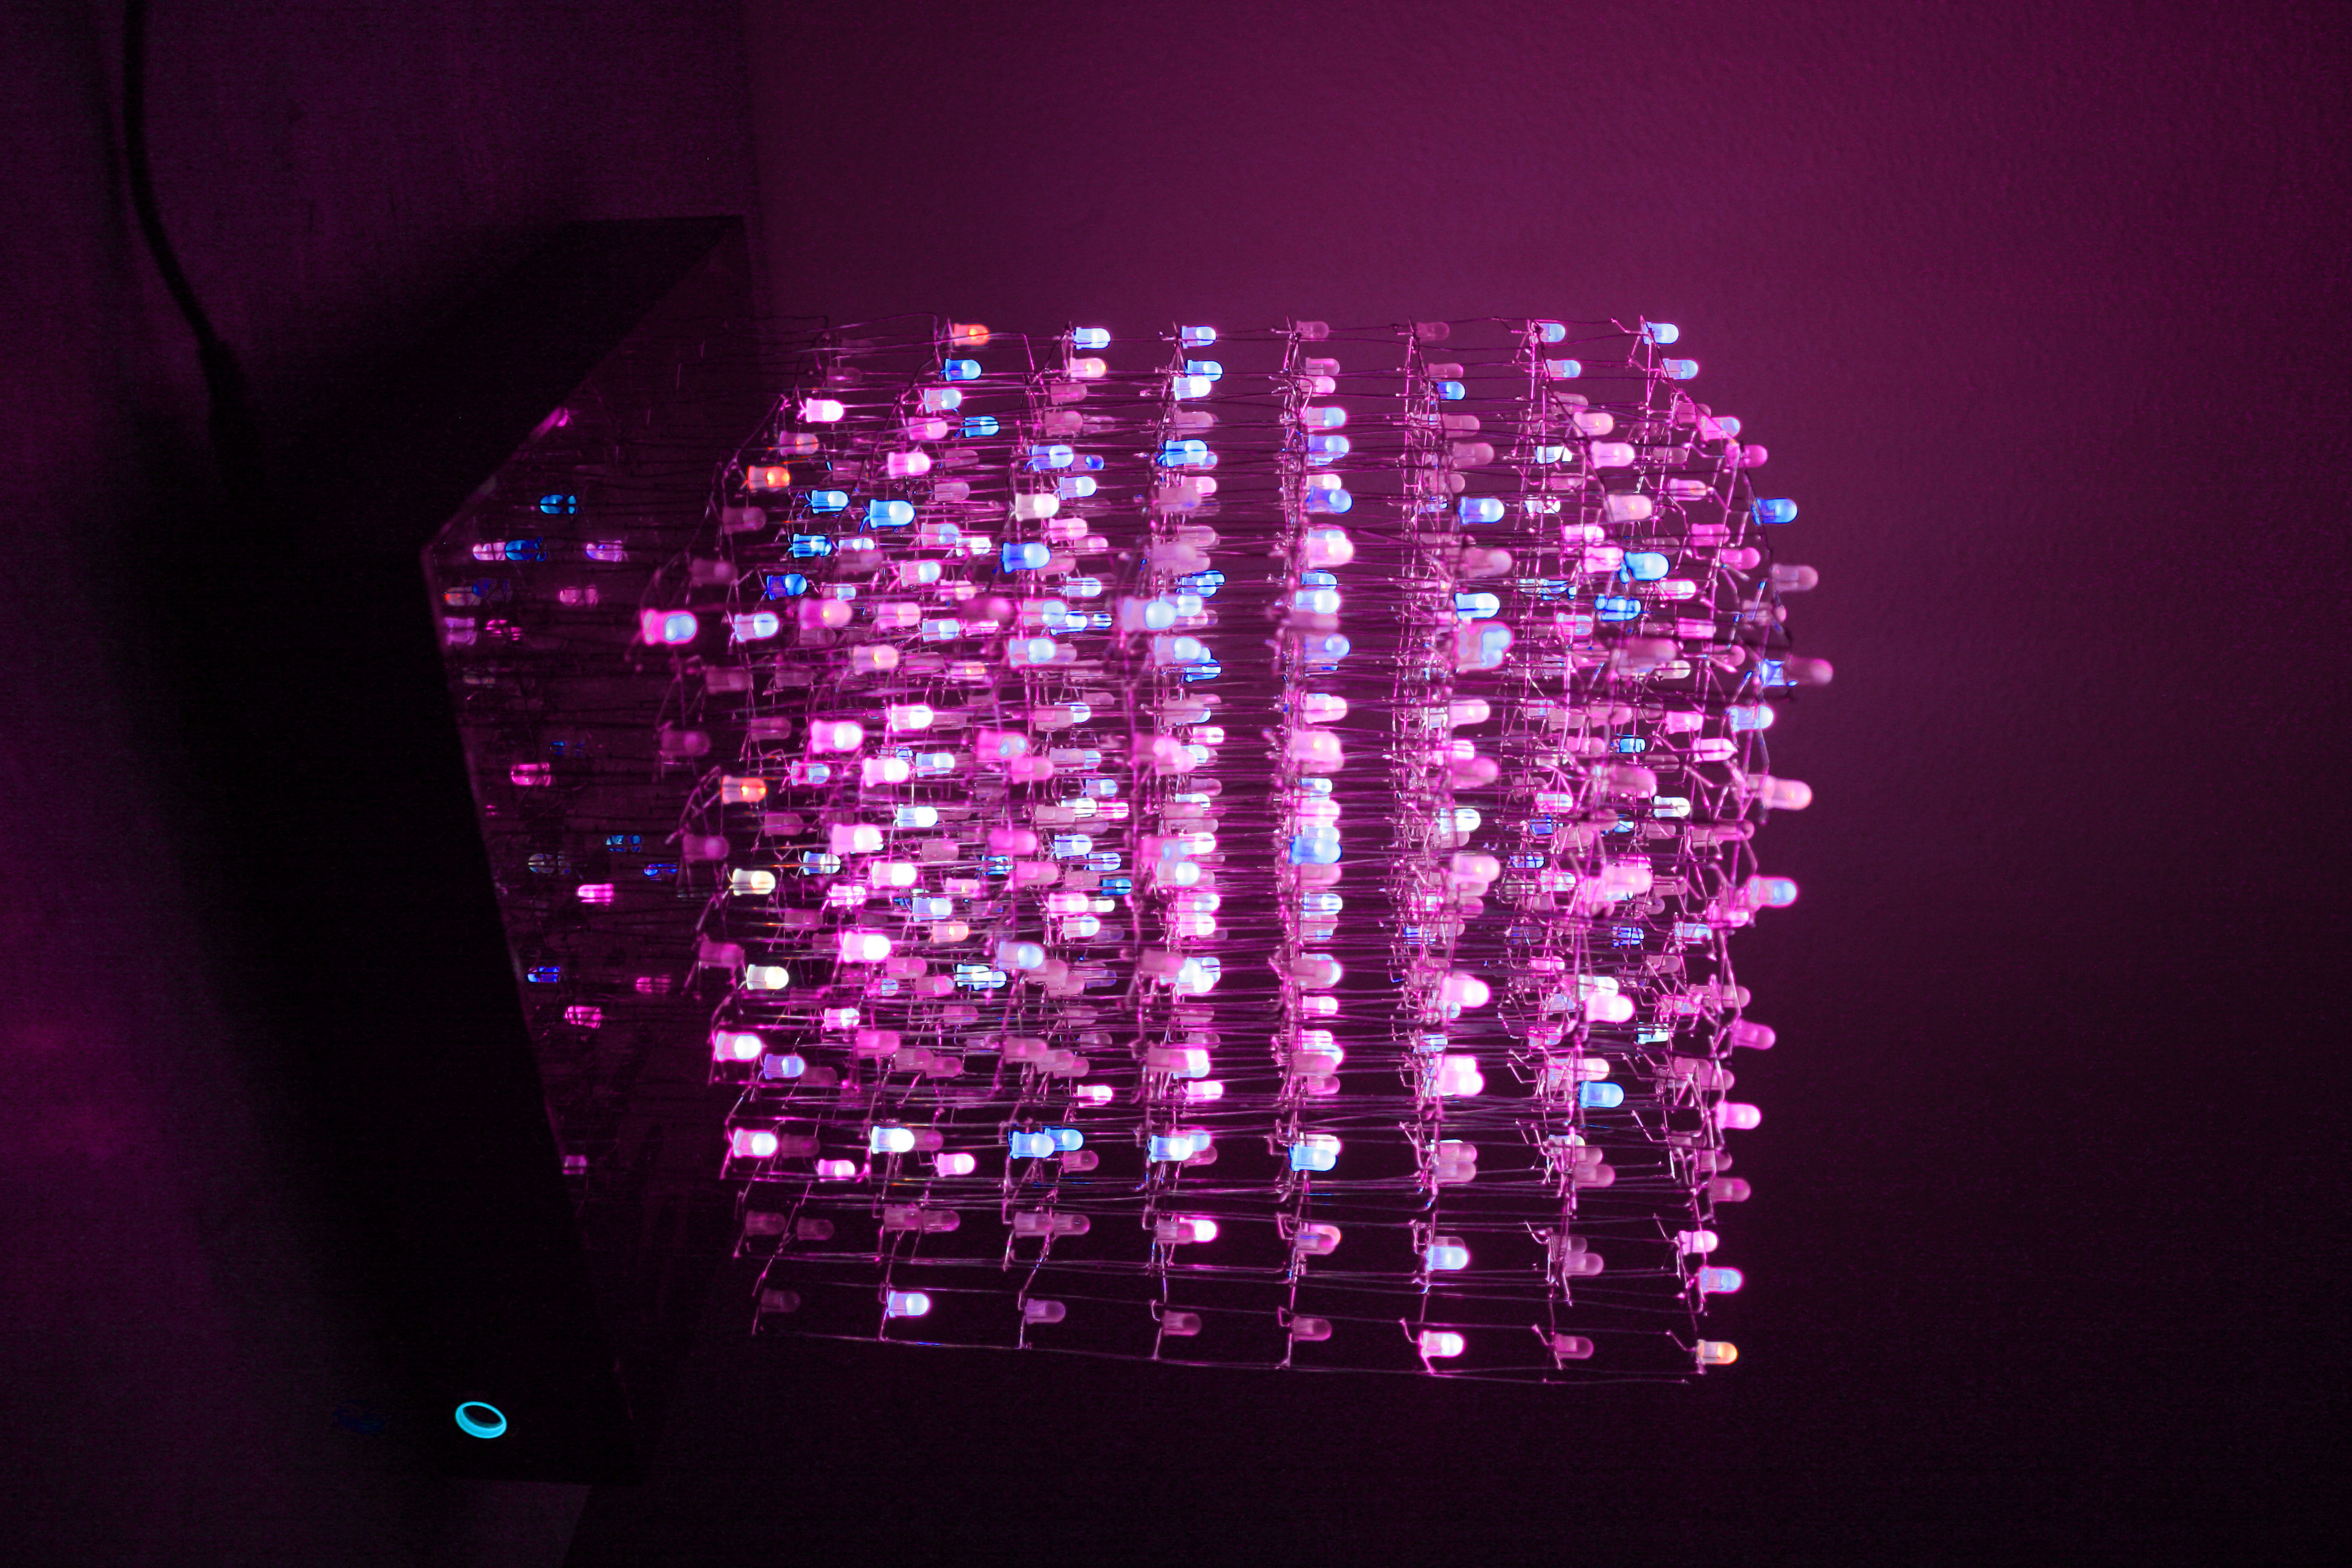 Picture of RGB 8x8x8 LED Cube